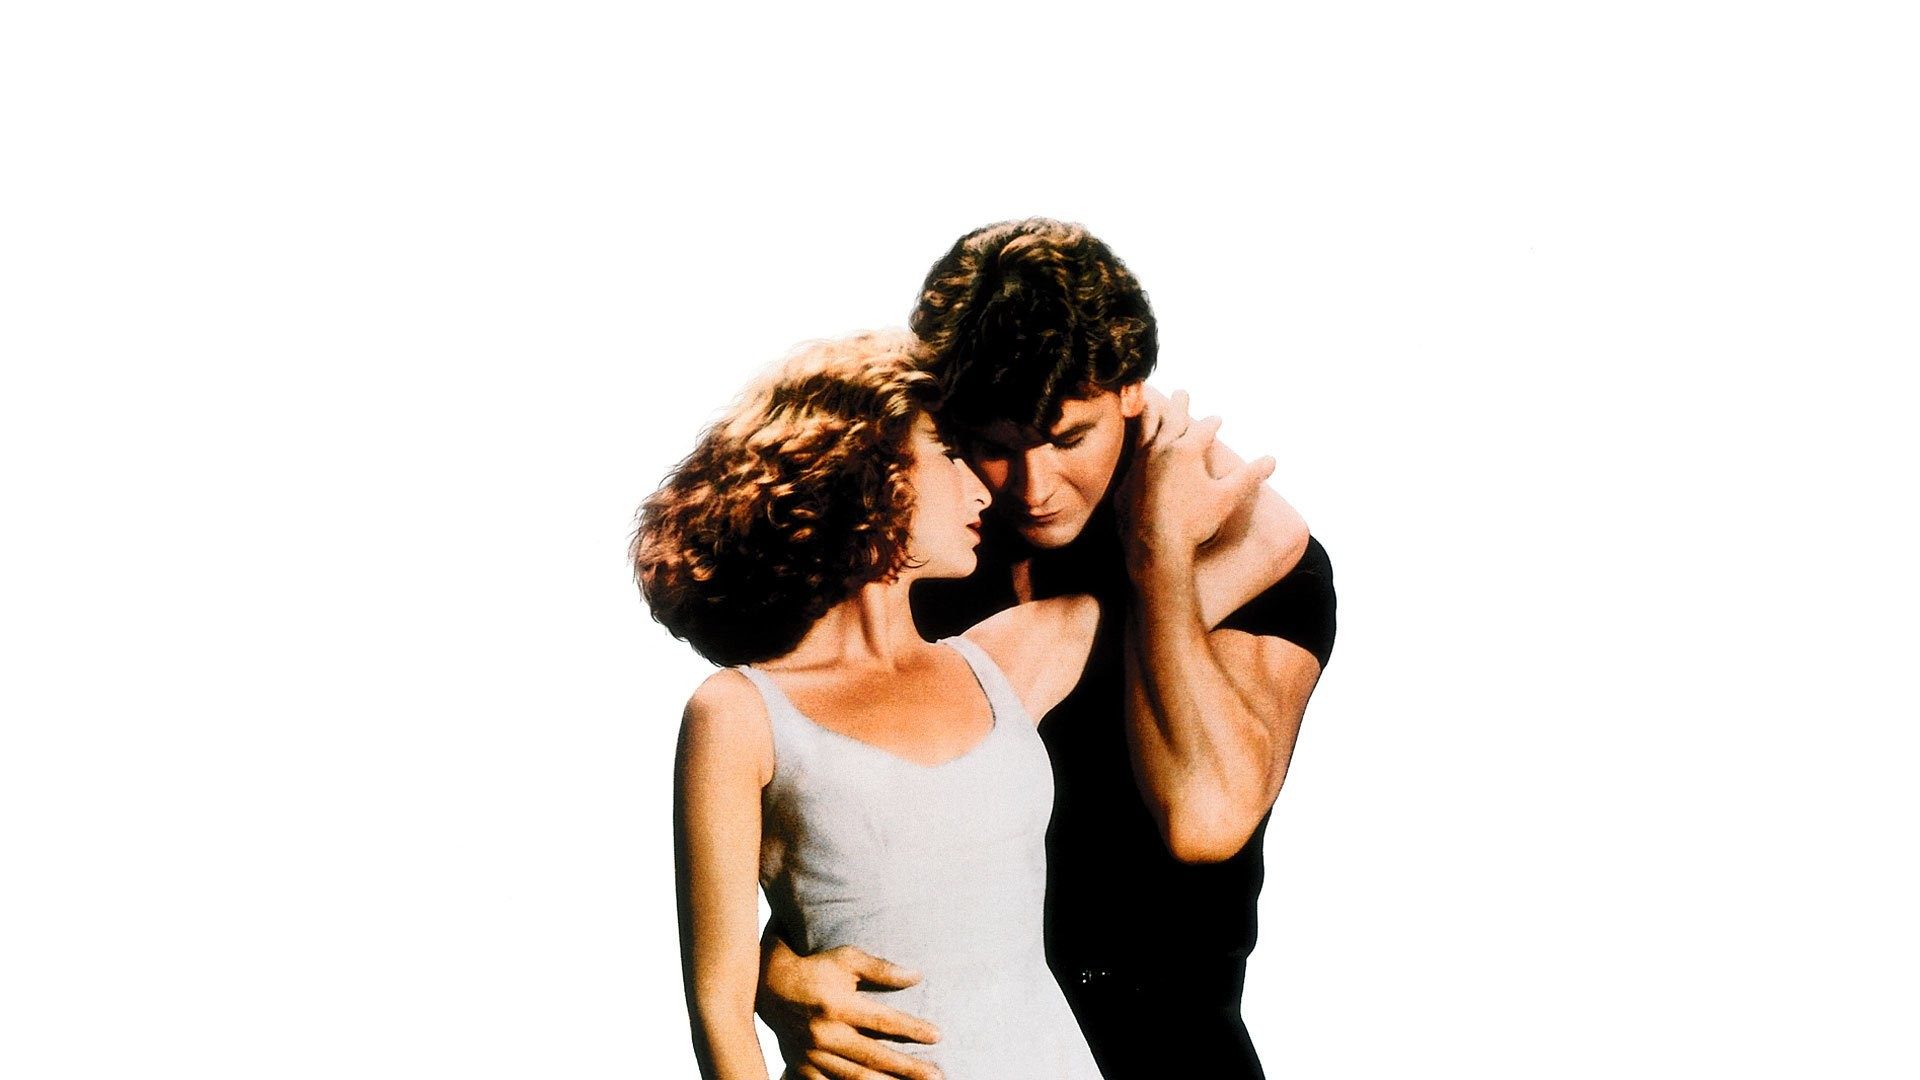 Res: 1920x1080, HD Wallpaper | Background Image ID:801419.  Movie Dirty Dancing